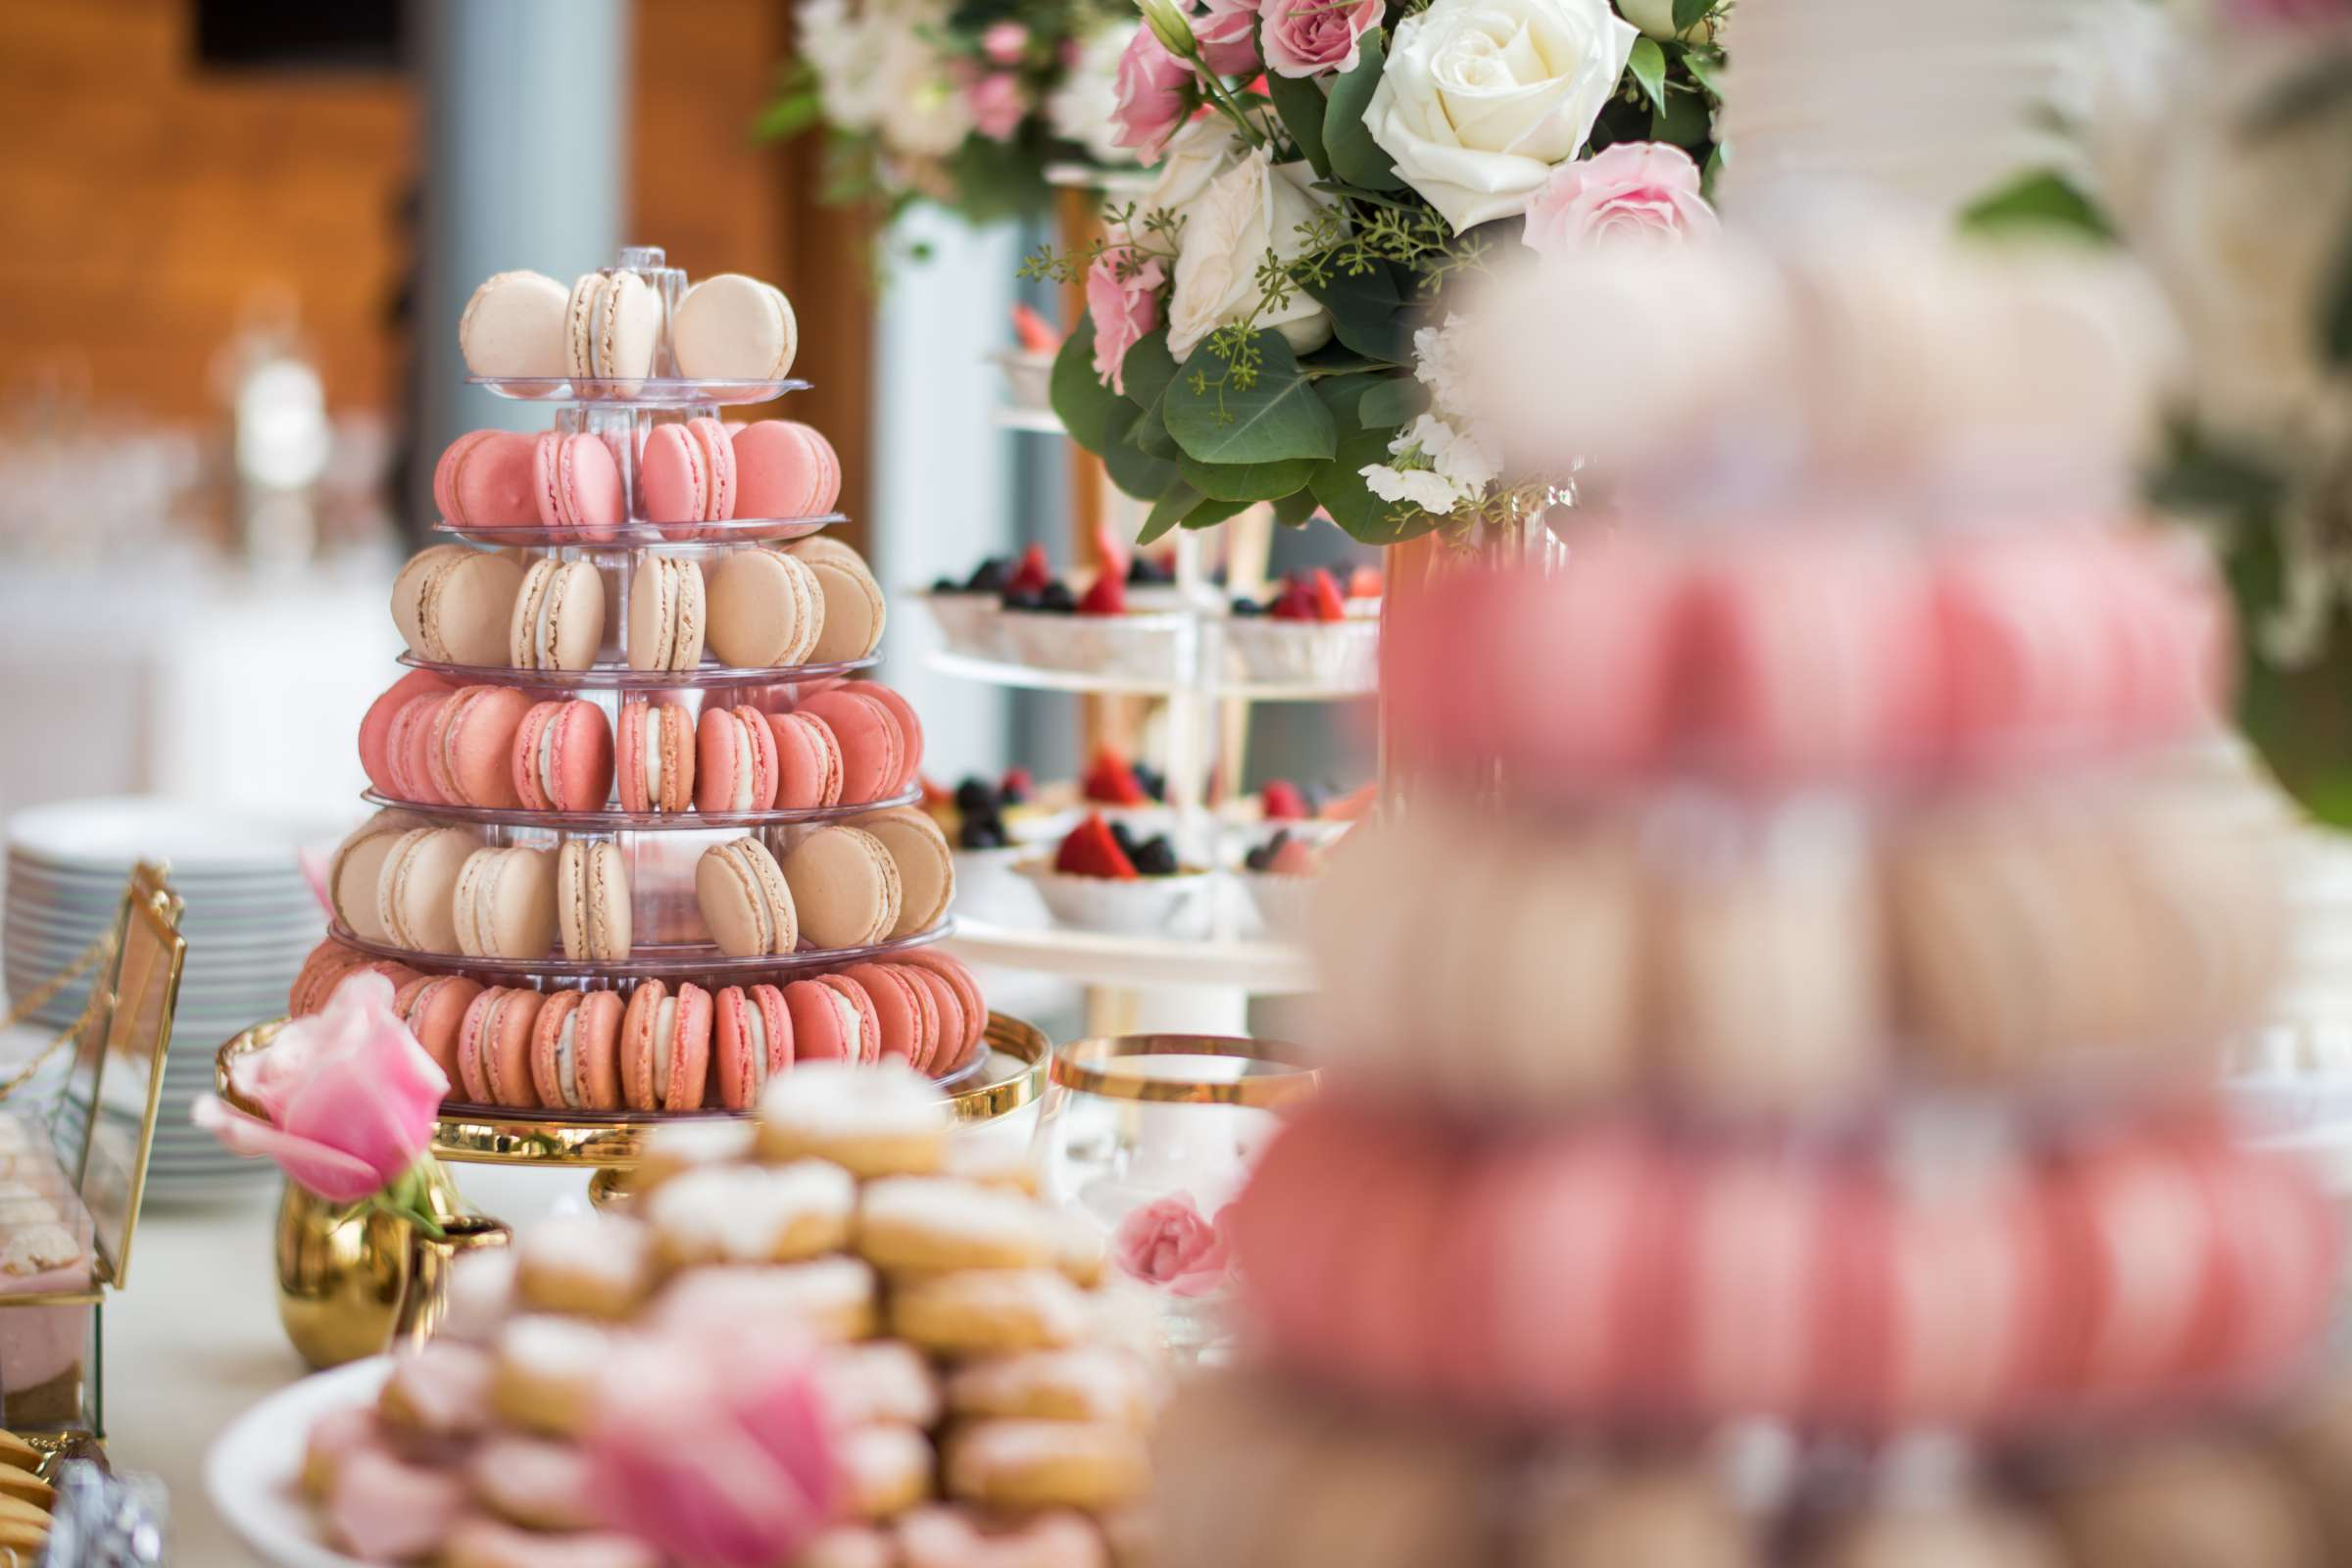 Scripps Seaside Forum Wedding coordinated by Lavish Weddings, Cindy and Justin Wedding Photo #381949 by True Photography